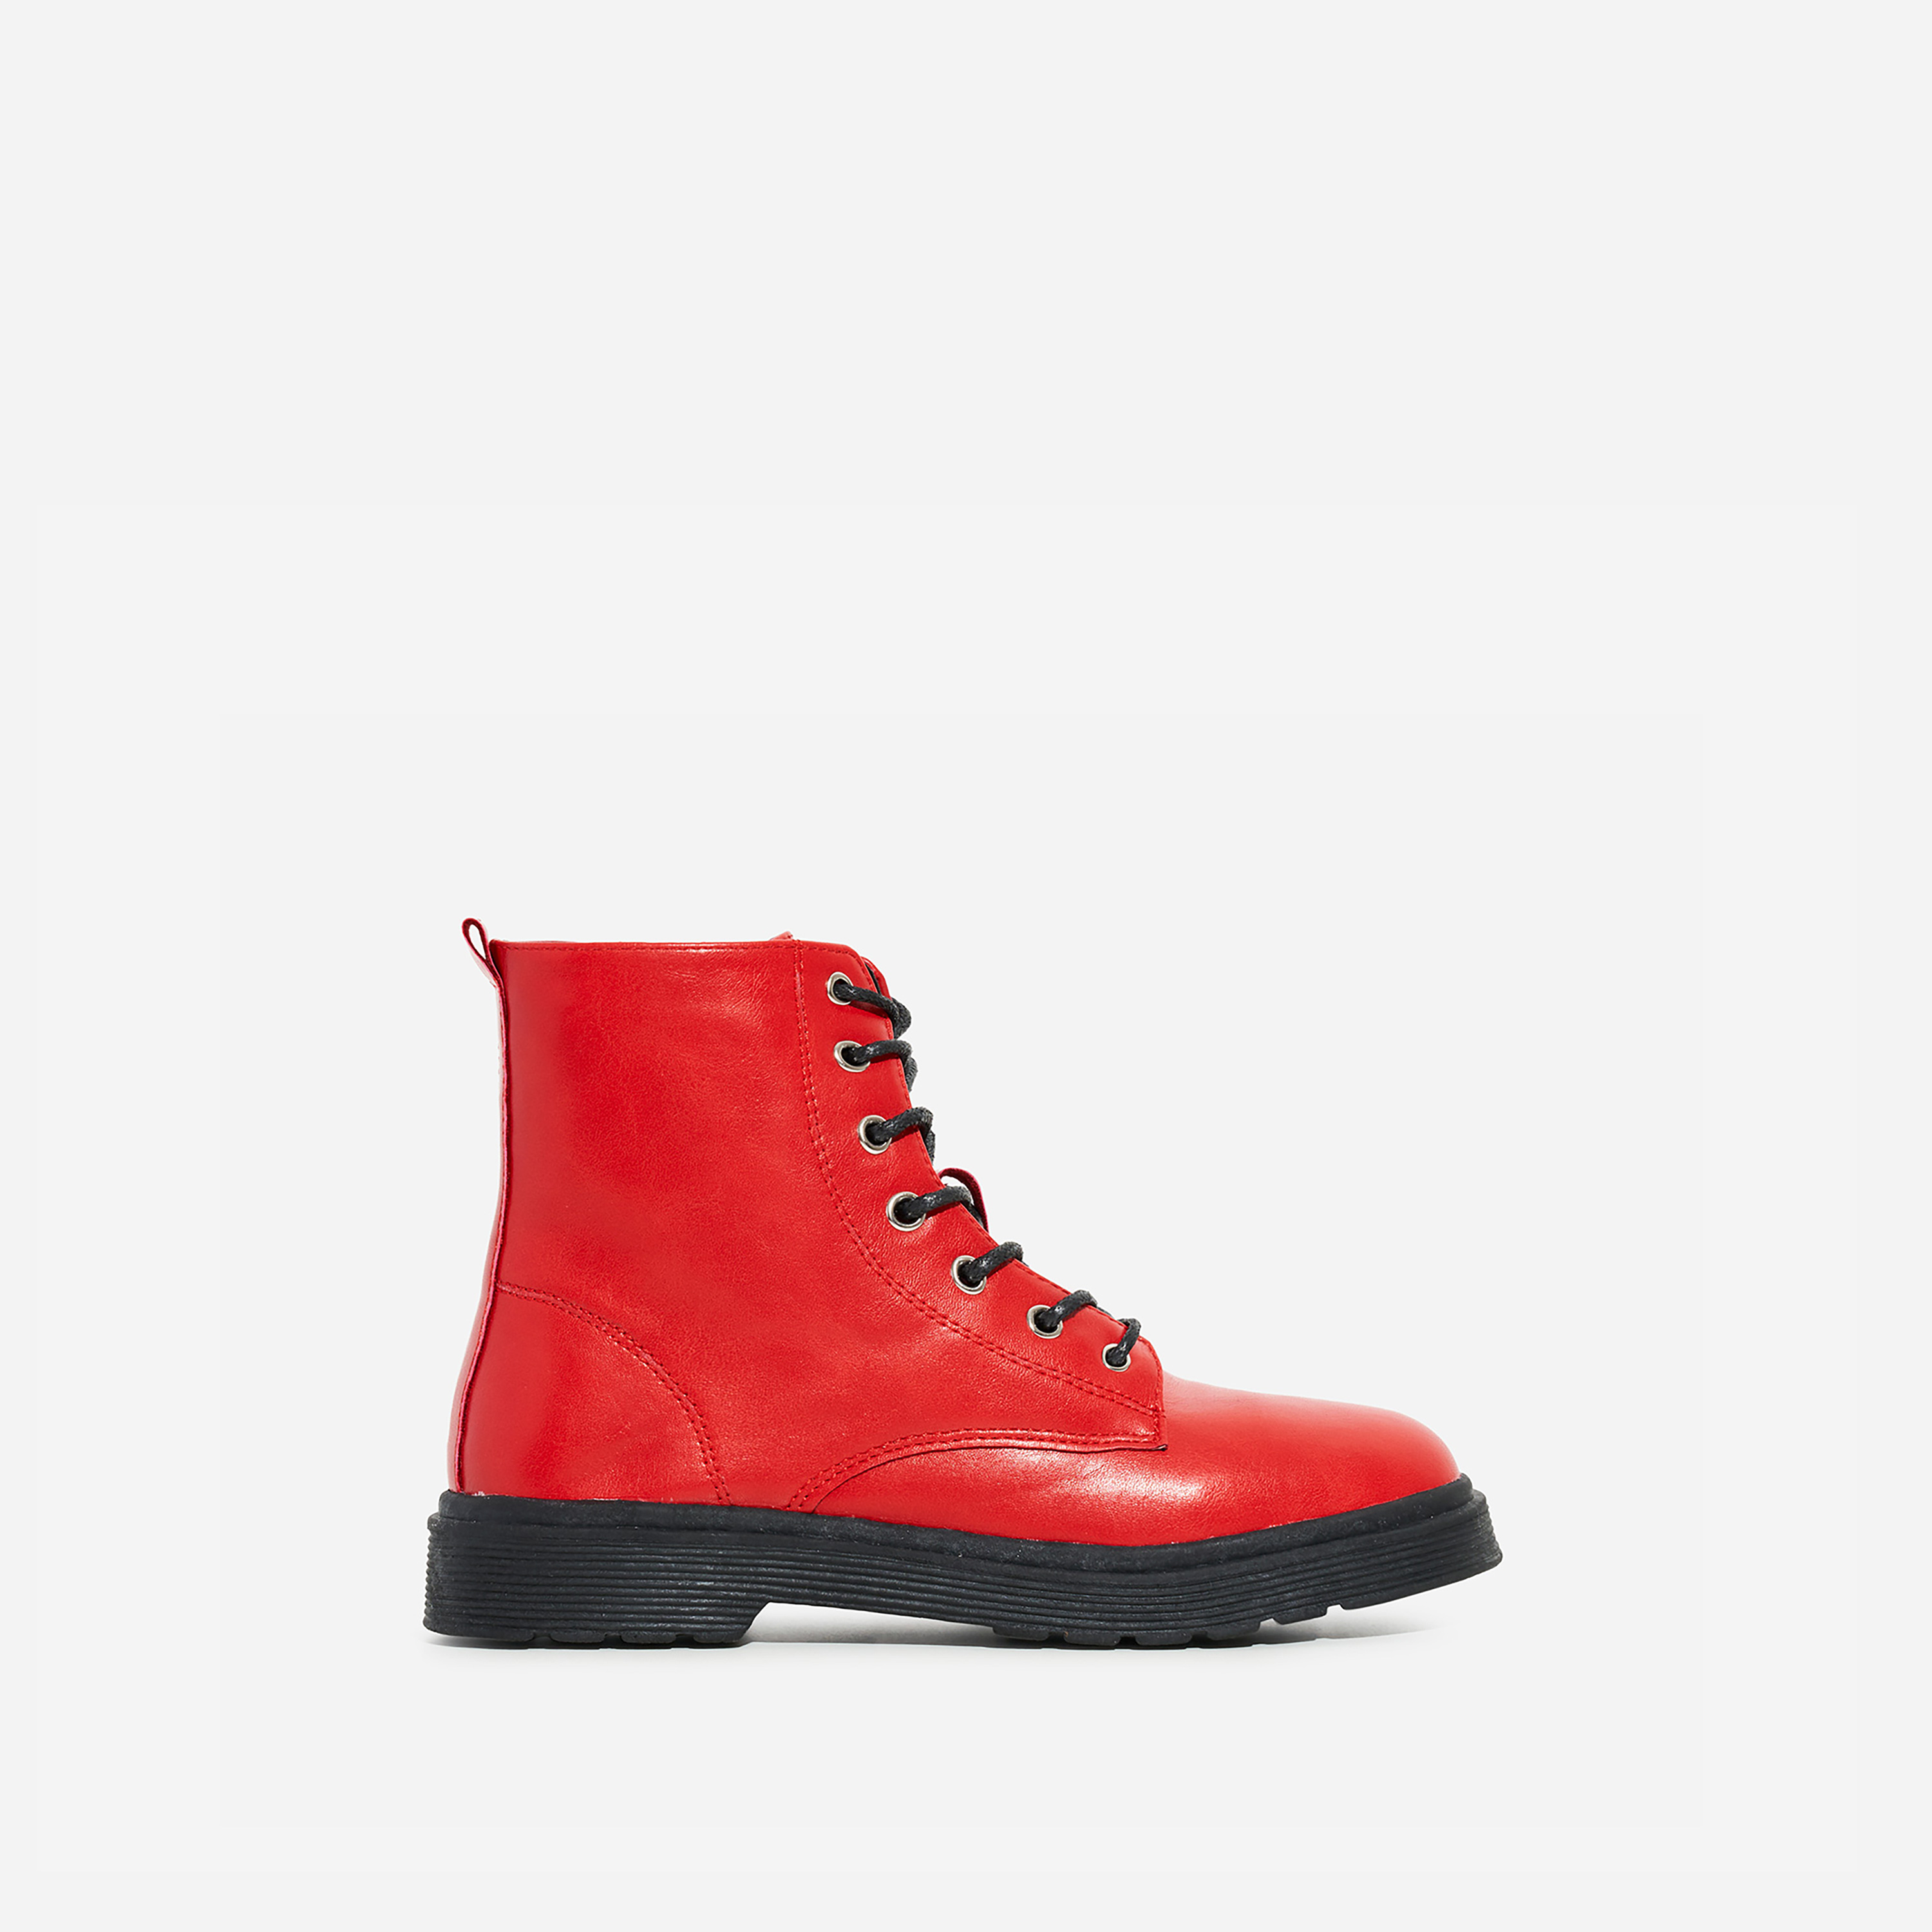 Poppin Girl's Lace Up Ankle Biker Boot In Red Faux Leather